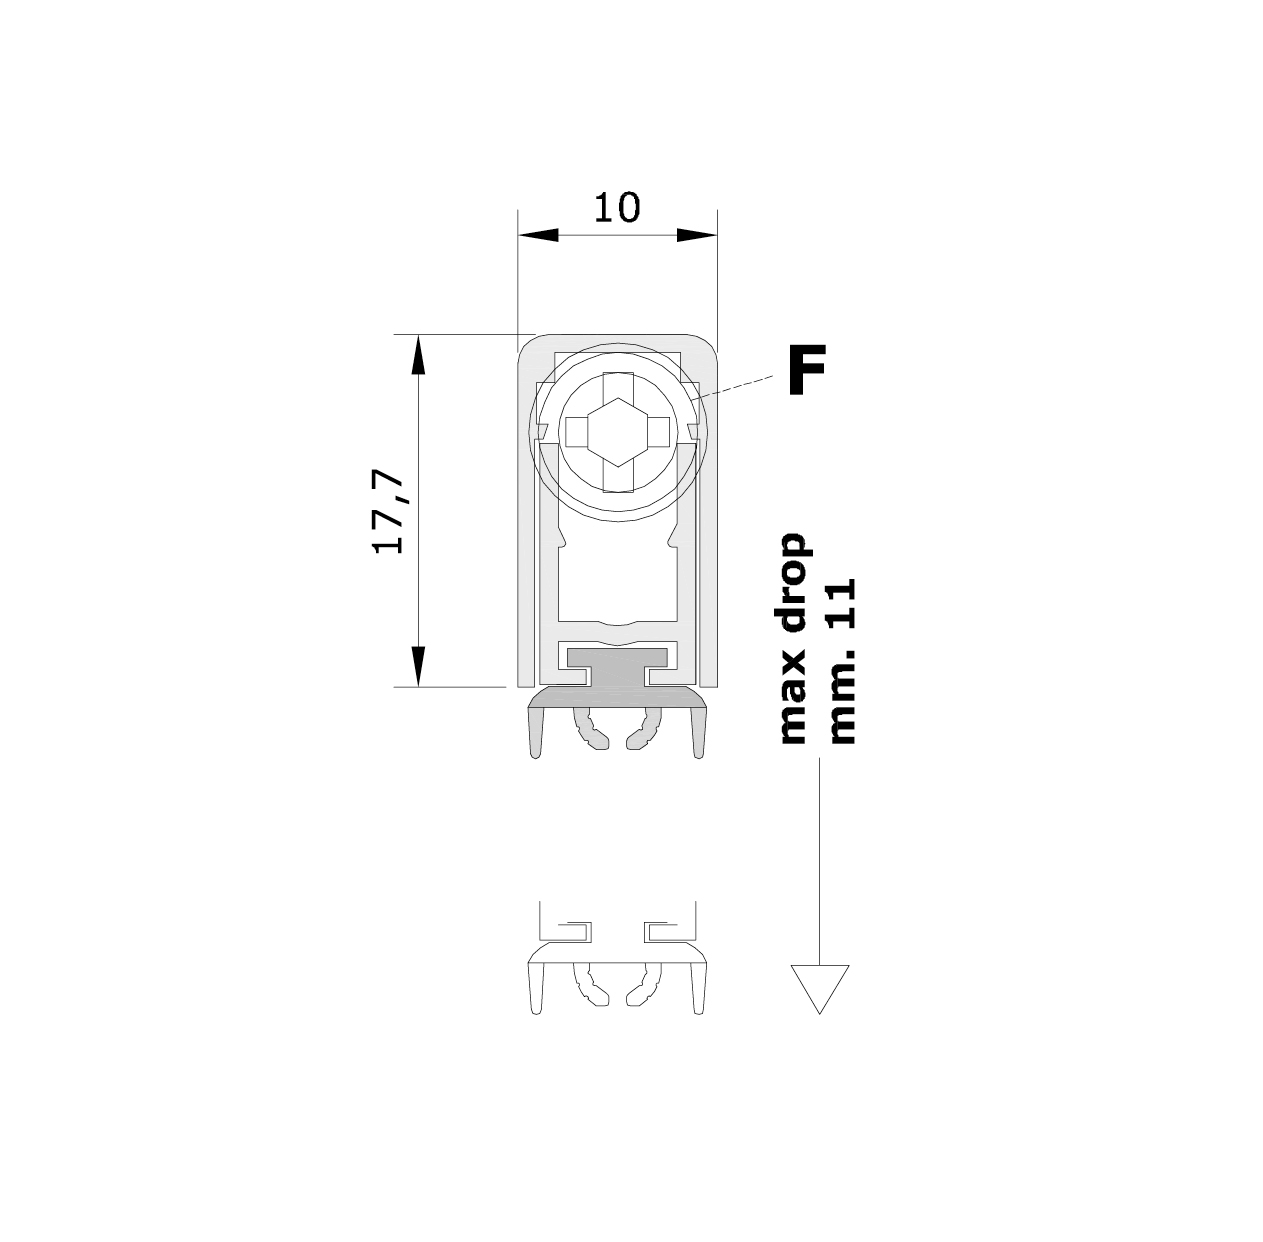 Standard measurements (mm) for drop down seal Special Series 920